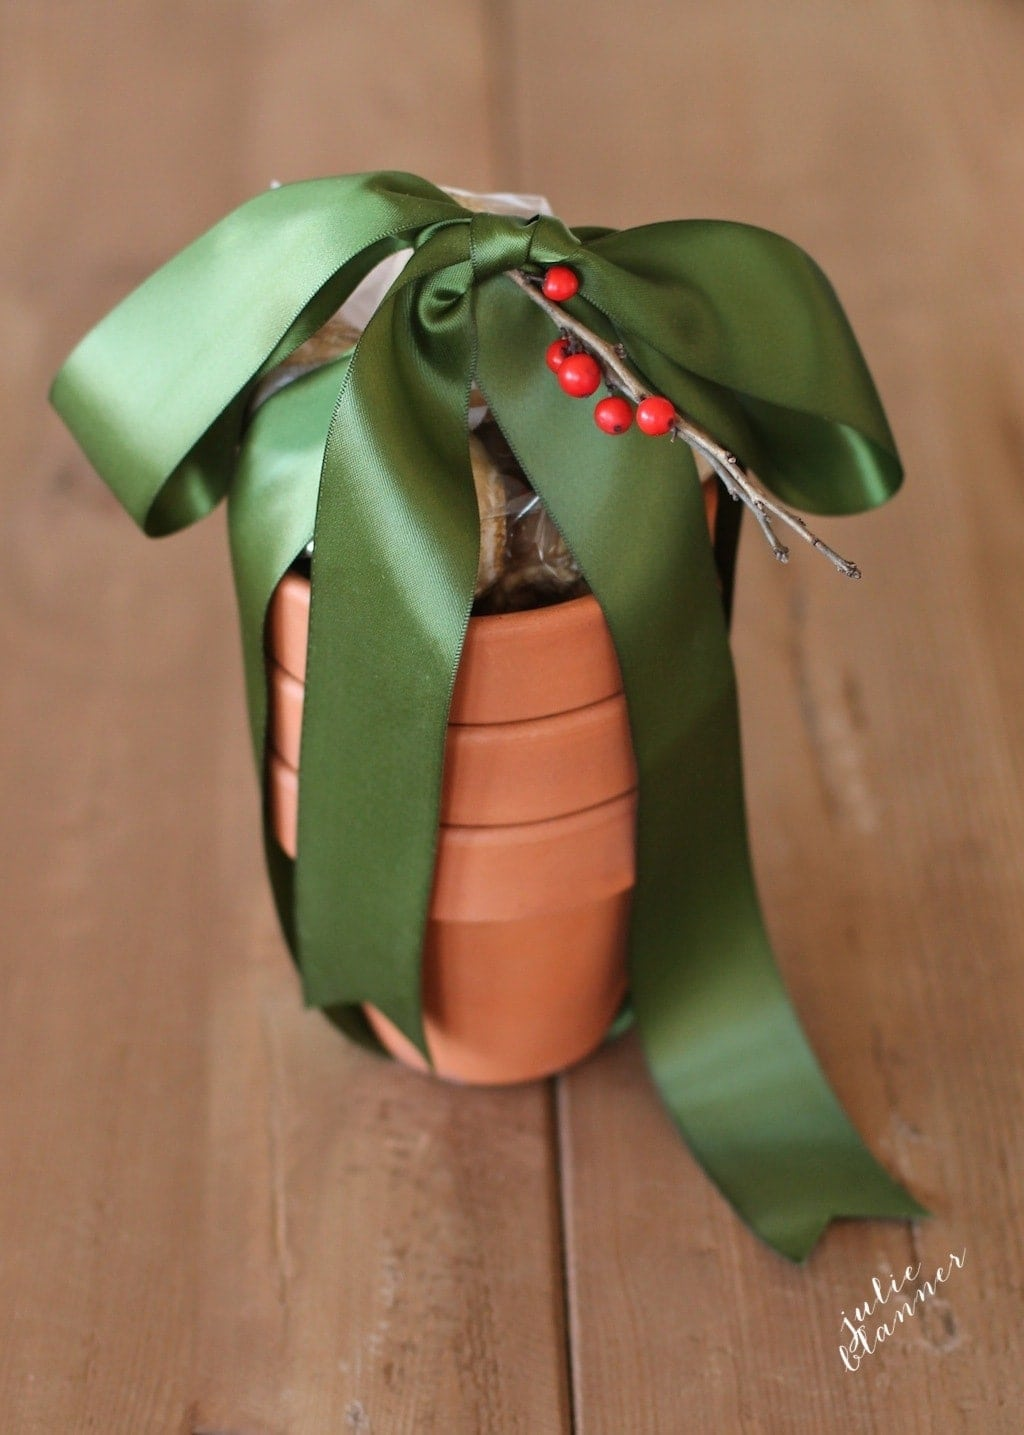 Gifts in a Basket - Tips for Gorgeous Gift Giving